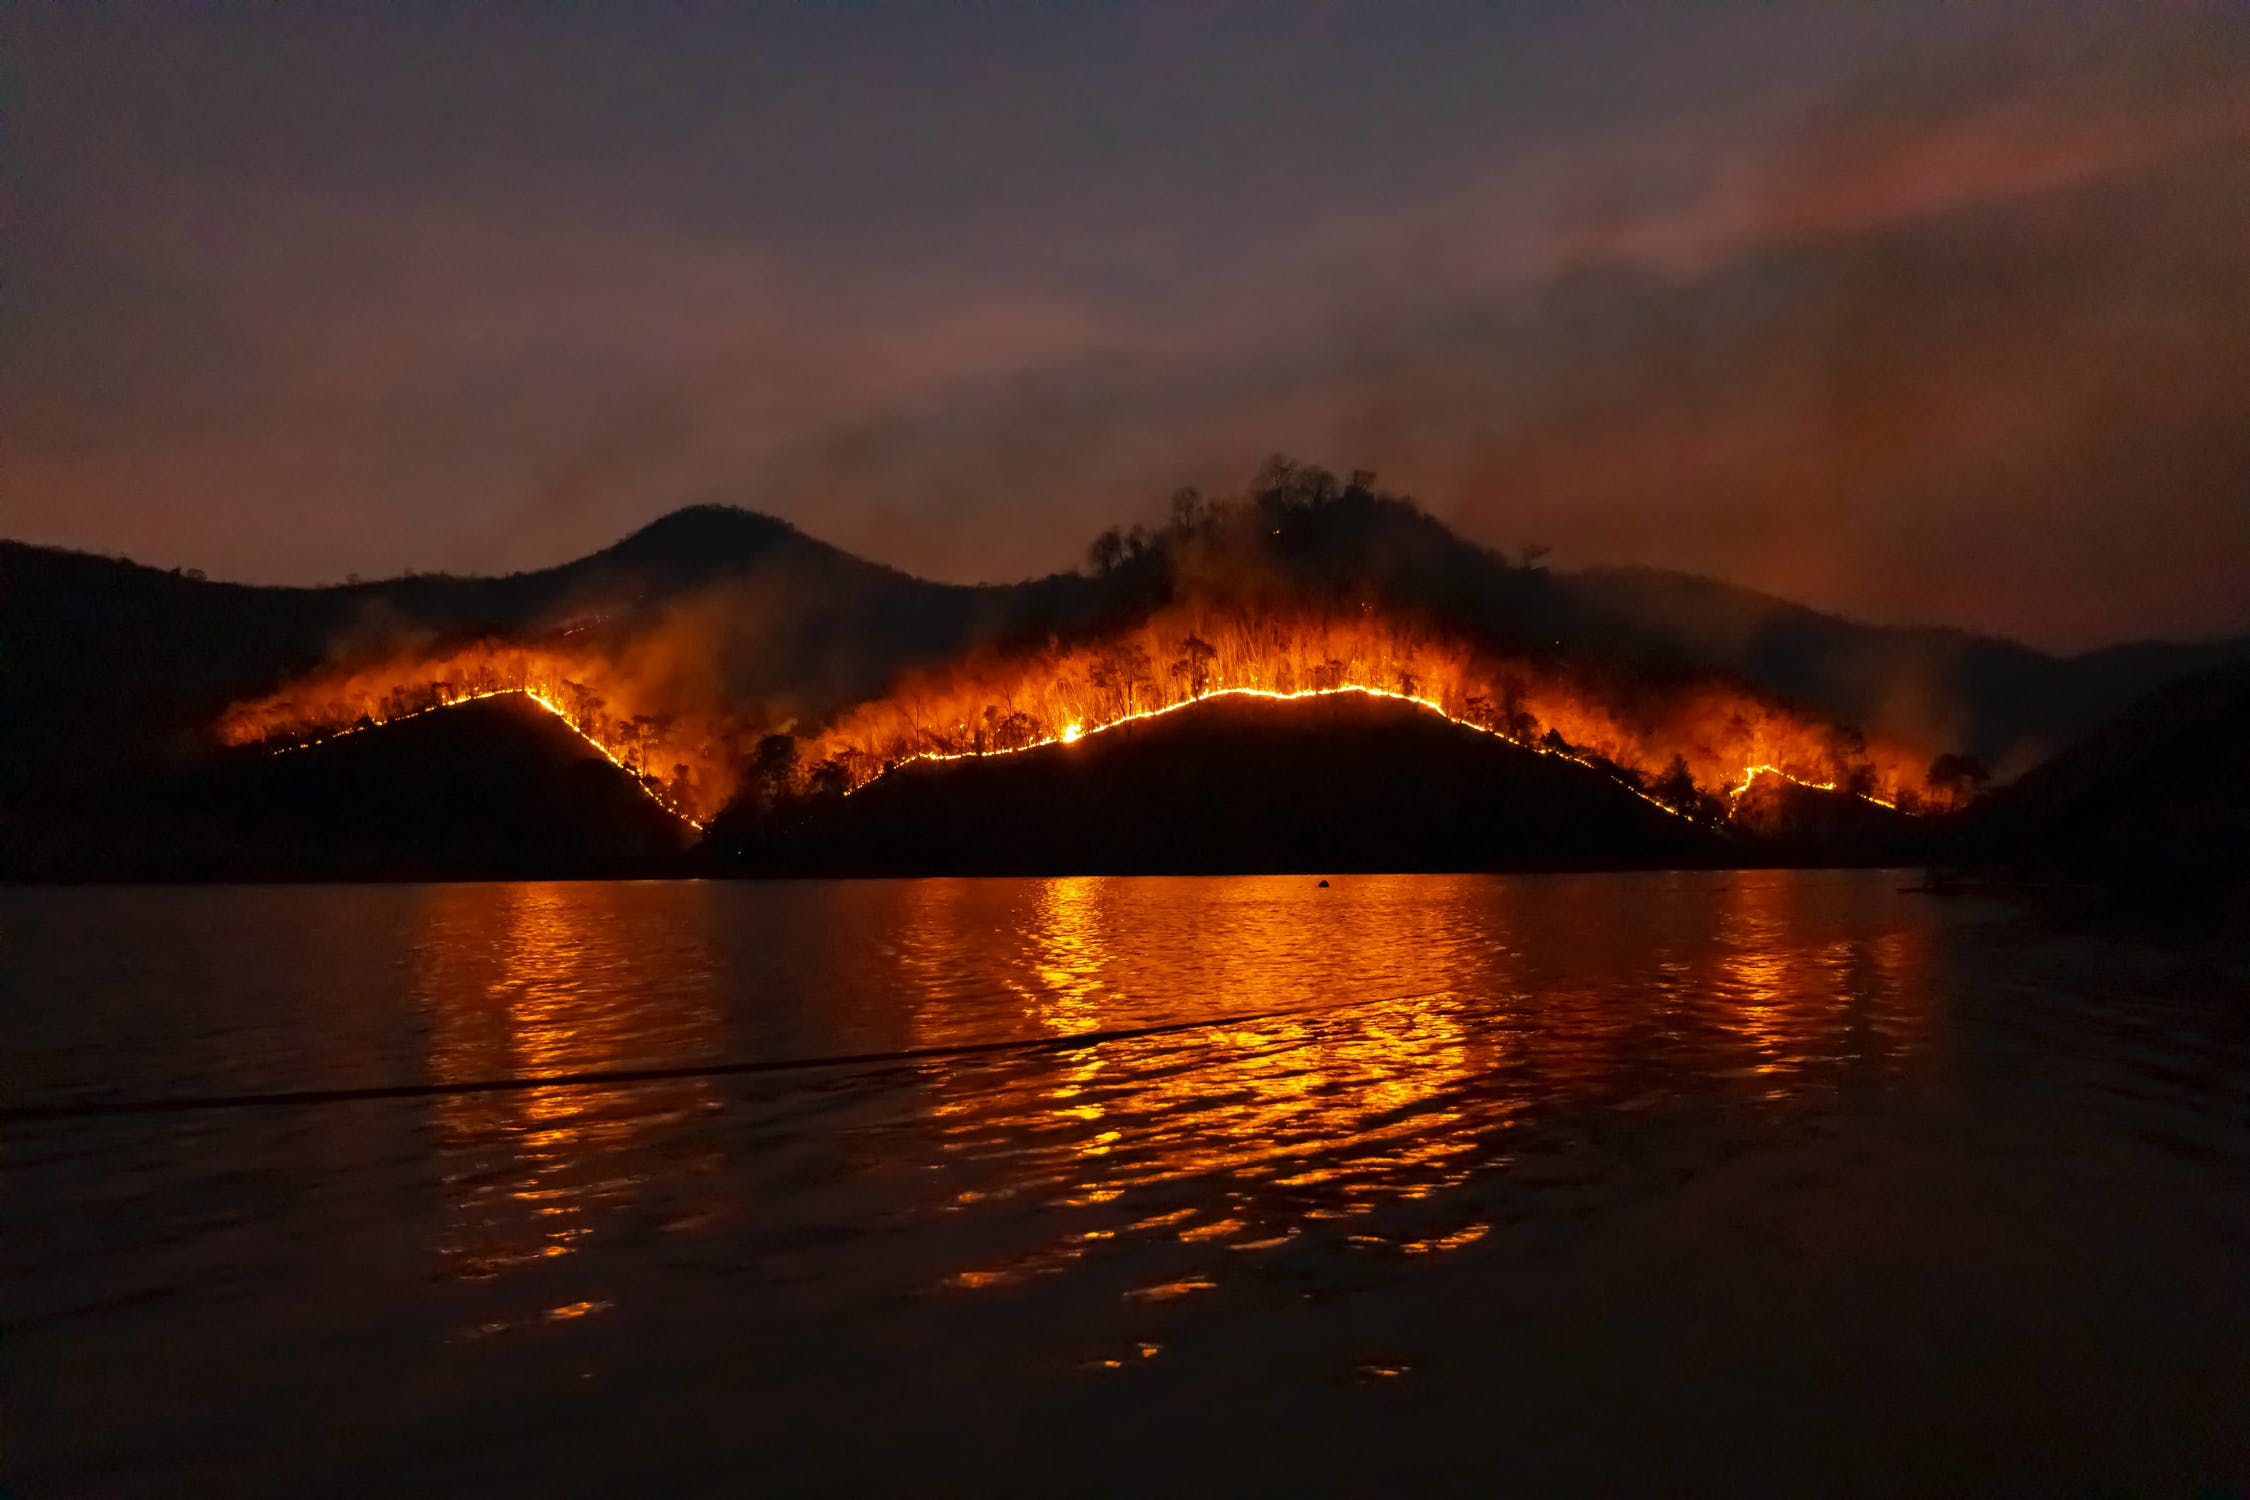 Droughts could lead to more wildfires